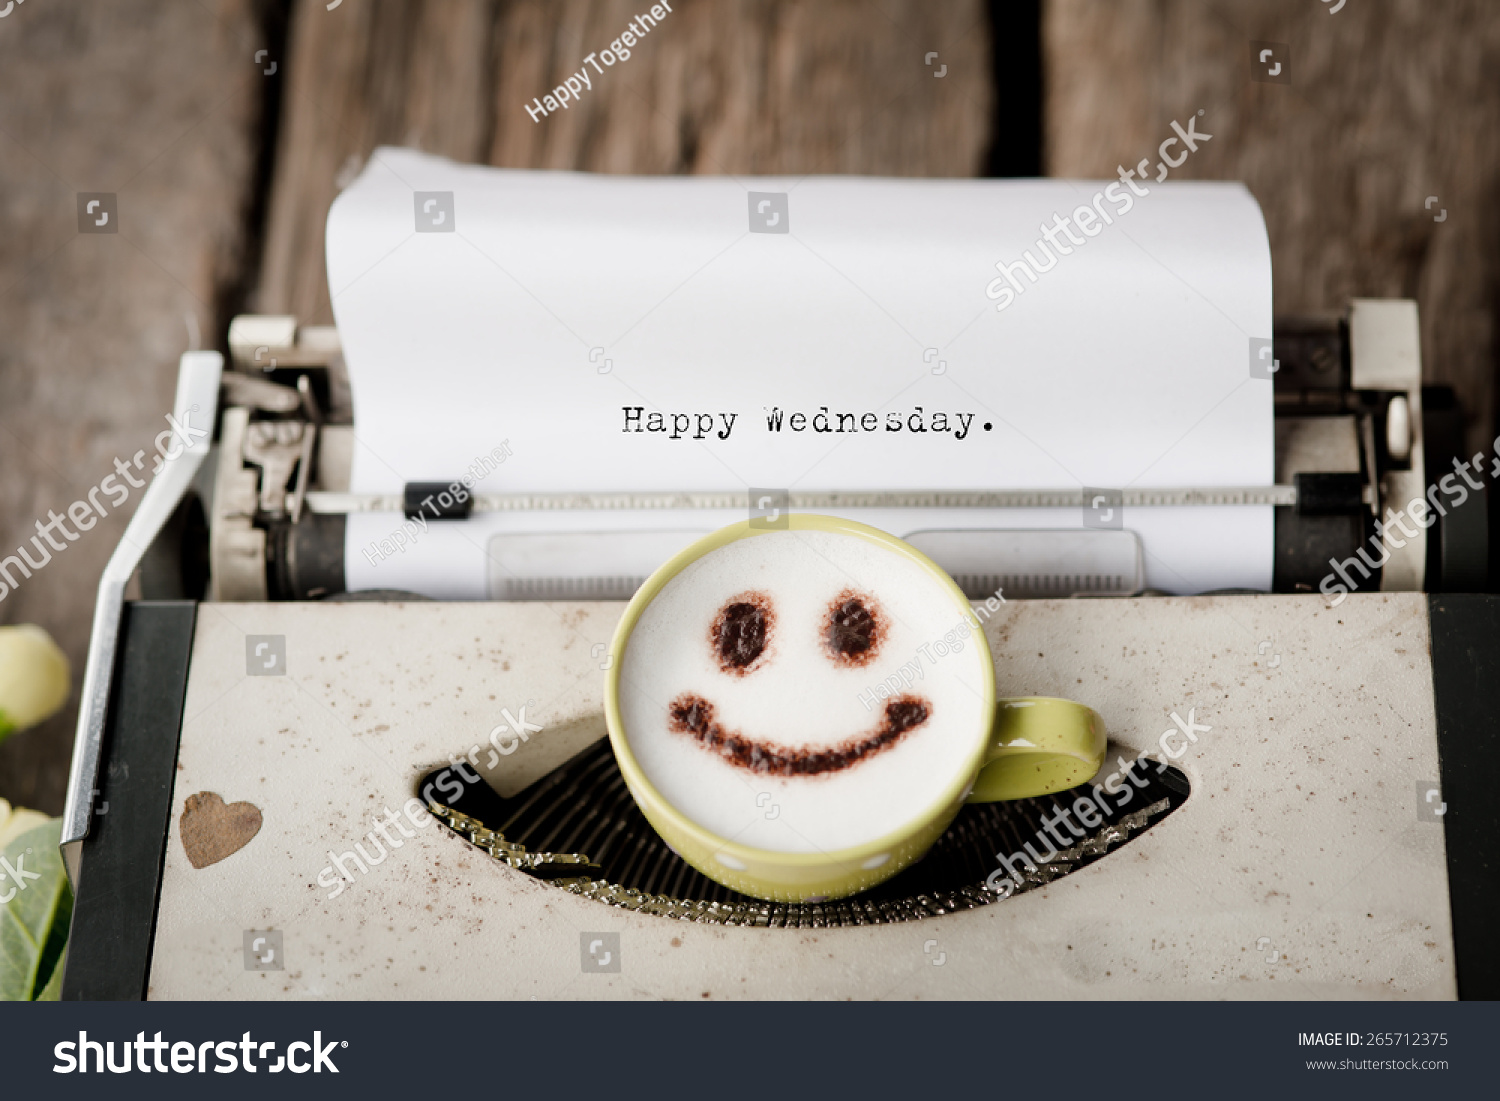 Bildergebnis für Happy Wednesday with typewriter